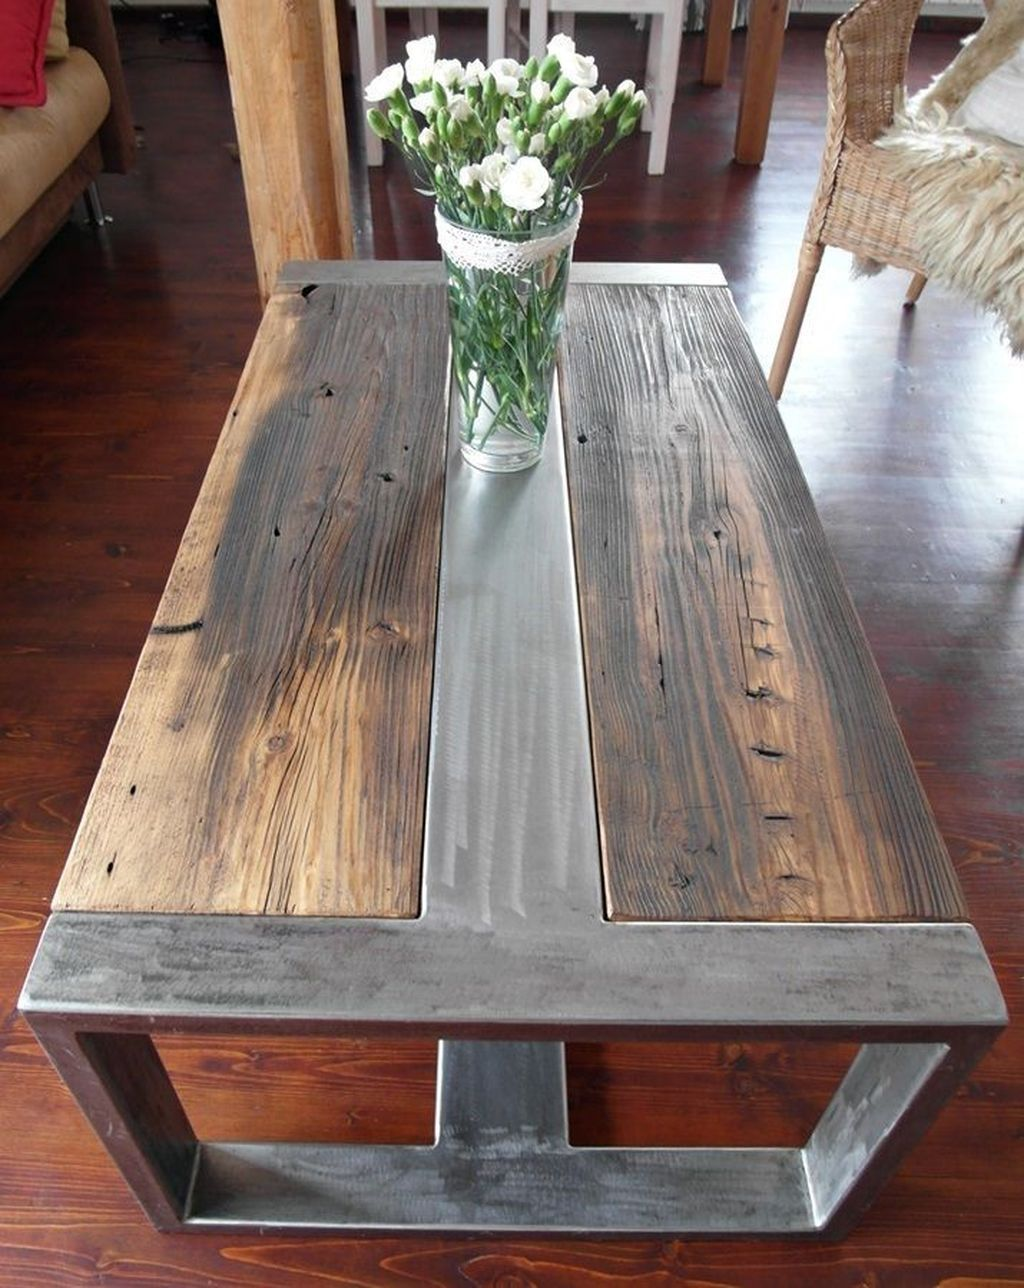 39 Lovely Diy Industrial Coffee Table Ideas On A Budget Rustic Furniture Design Coffee Table Wood Vintage Industrial Furniture [ 1288 x 1024 Pixel ]